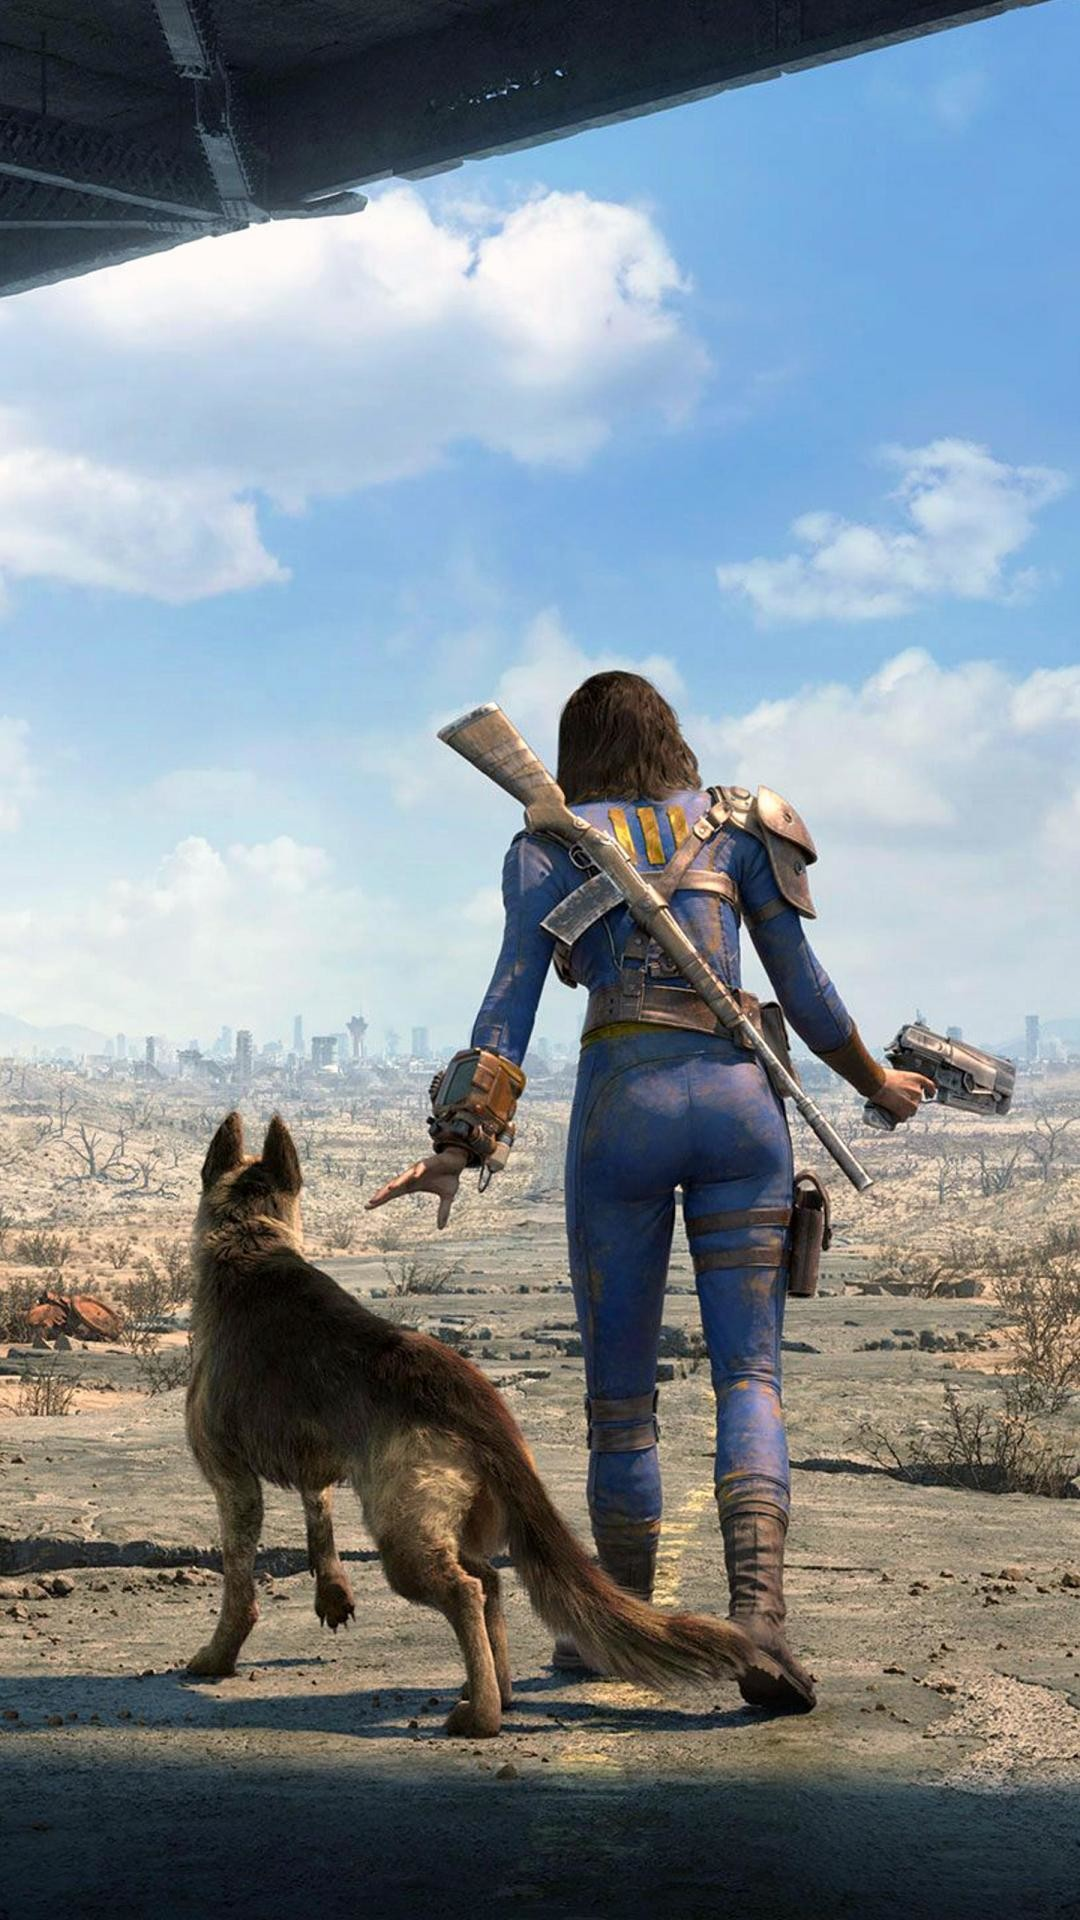 Awesome fallout 4 wallpaper for iPhone 6 plus